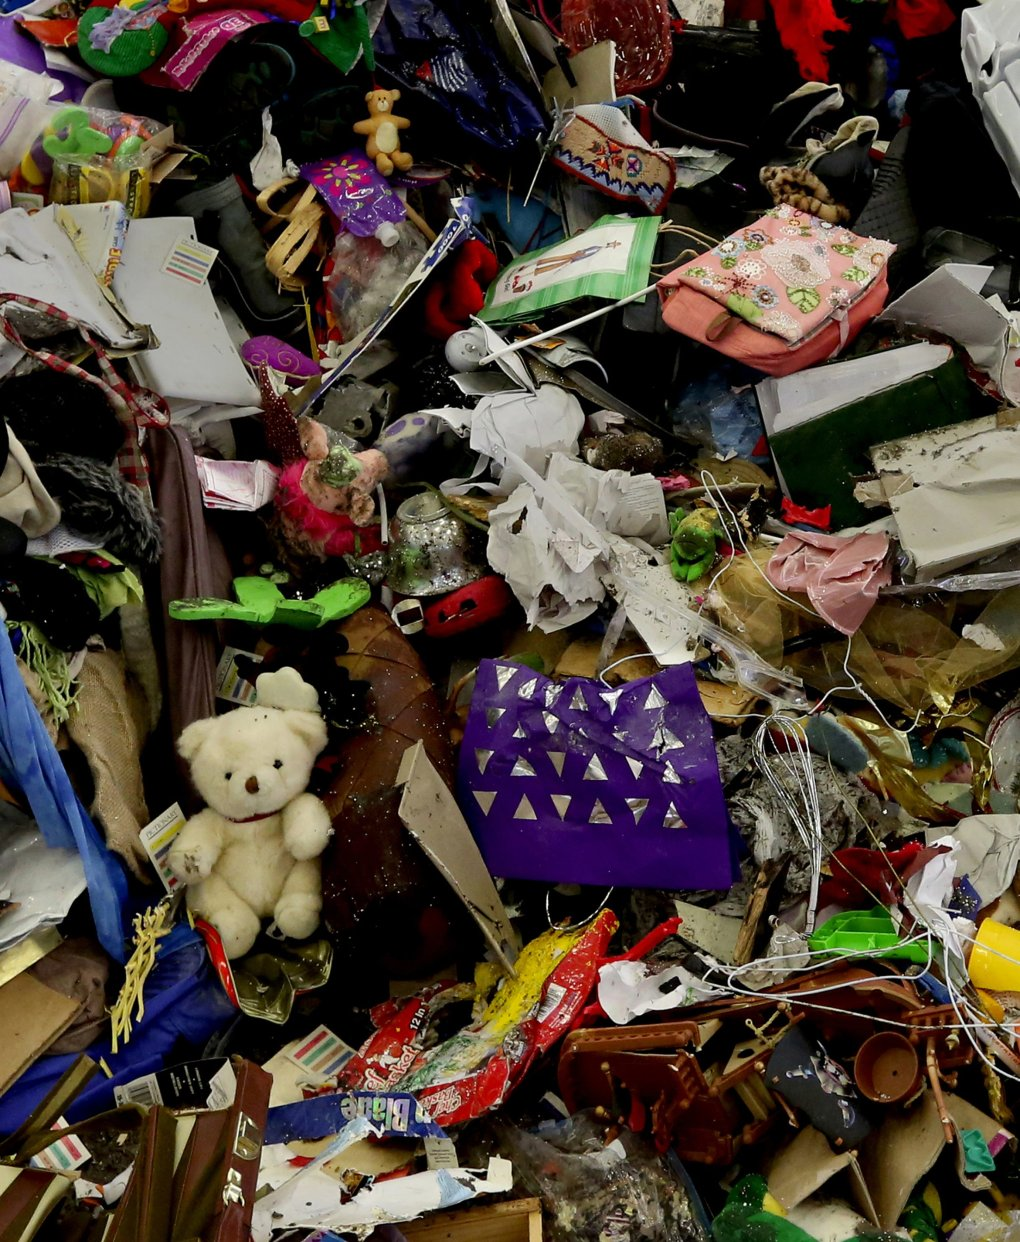 Once treasured, now discarded, a teddy bear is part of the refuse at Seattle's South Transfer Station awaiting shipment to a landfill in Eastern Oregon. (Alan Berner/The Seattle Times)